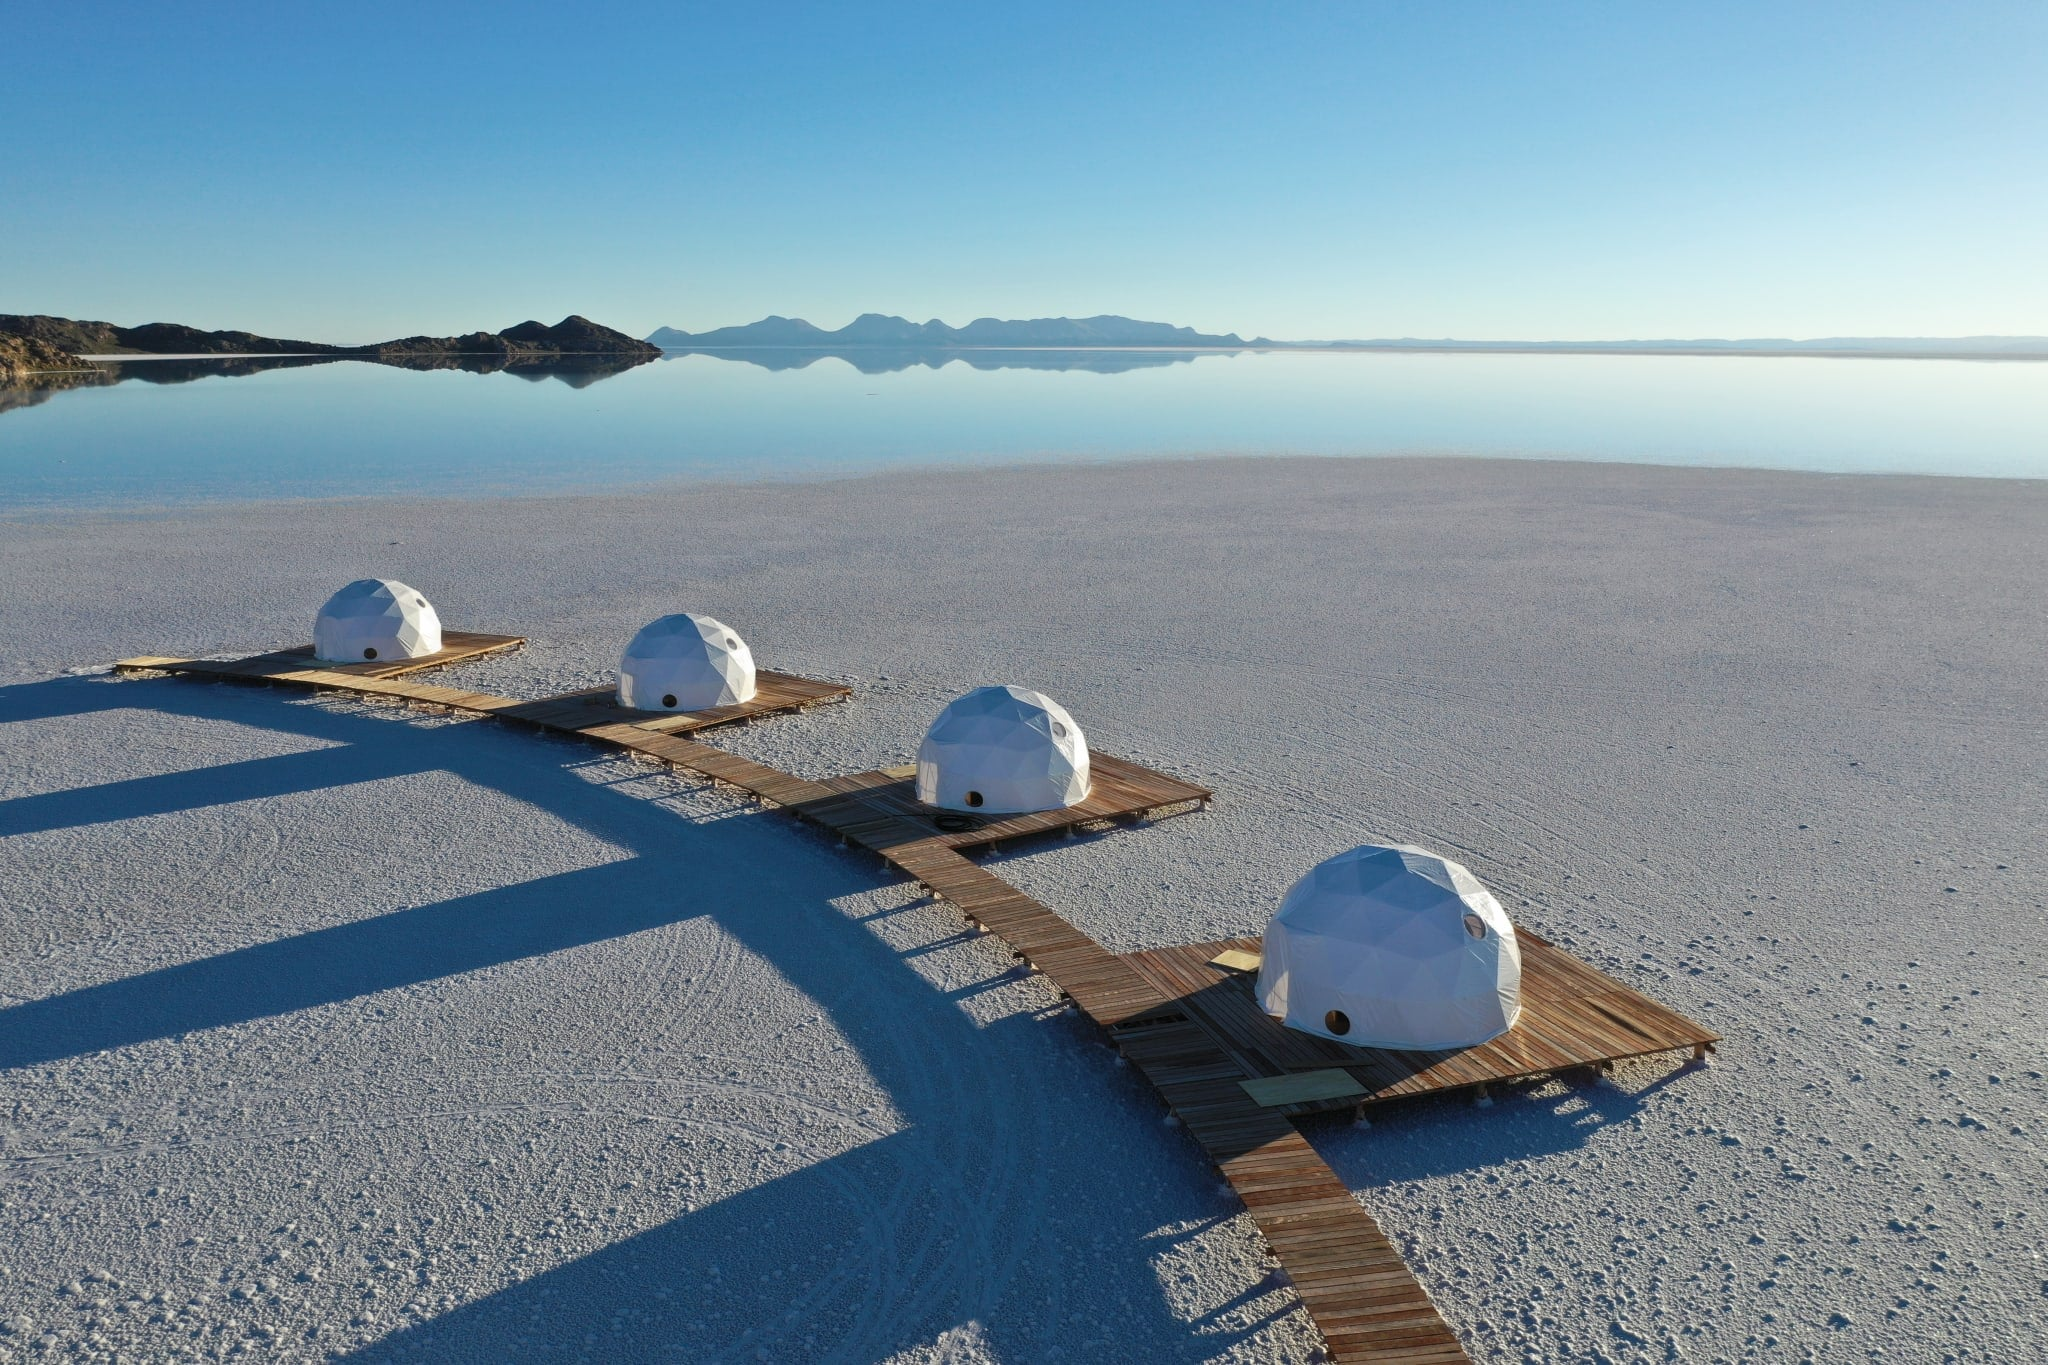 #5. Kachi Lodge, Uyuni Salt Flats, Bolivia: Until we start sending commercial flights to the moon, the Kachi Lodge on Bolivia's Uyuni Salt Flats might be the most otherworldly vacation you can take. Opened in May at the foot of a volcano, Kachi (a two-night stay starts at $1,980 per person) is the first permanent ­accommodation of its kind on the world's largest salt flat, and its cluster of geo­desic domes resembles an isolated space station. (Image: Stock)